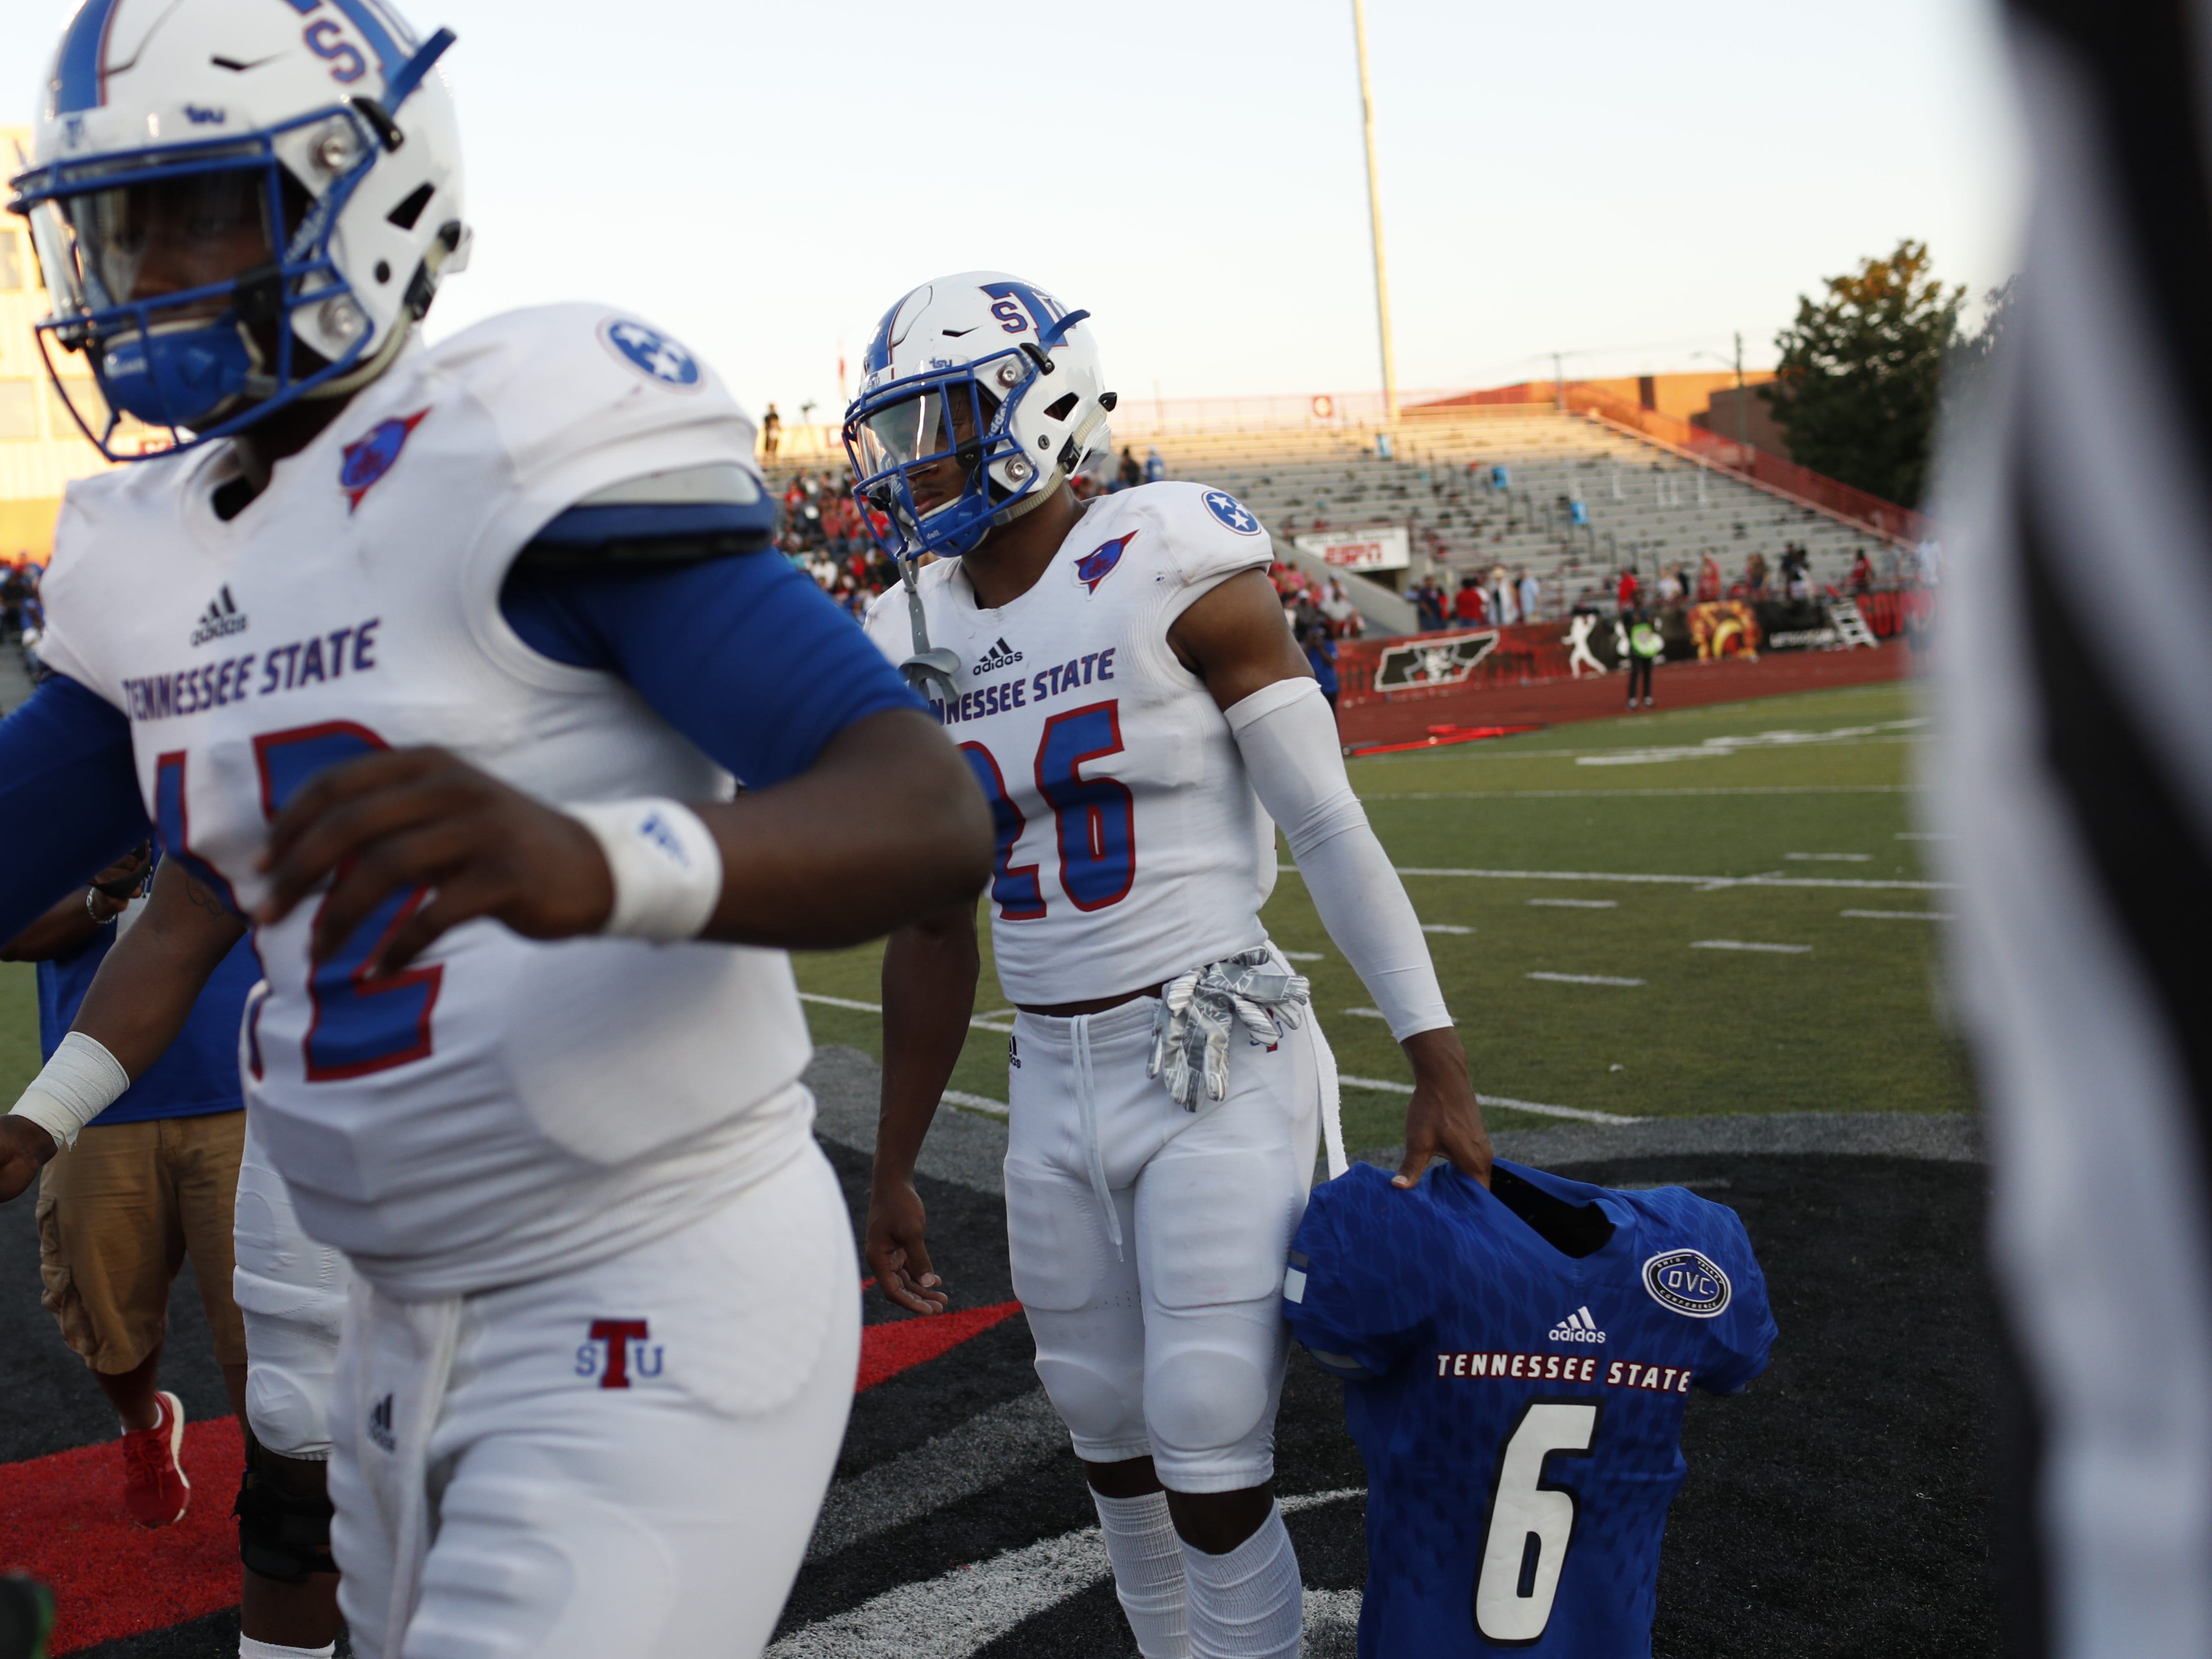 Tennessee State captain LaQuarius Cook holds the shoulder pads and jersey of linebacker Christion Abercrombie before the Tigers' game at Austin Peay on Saturday, October 6, 2018.